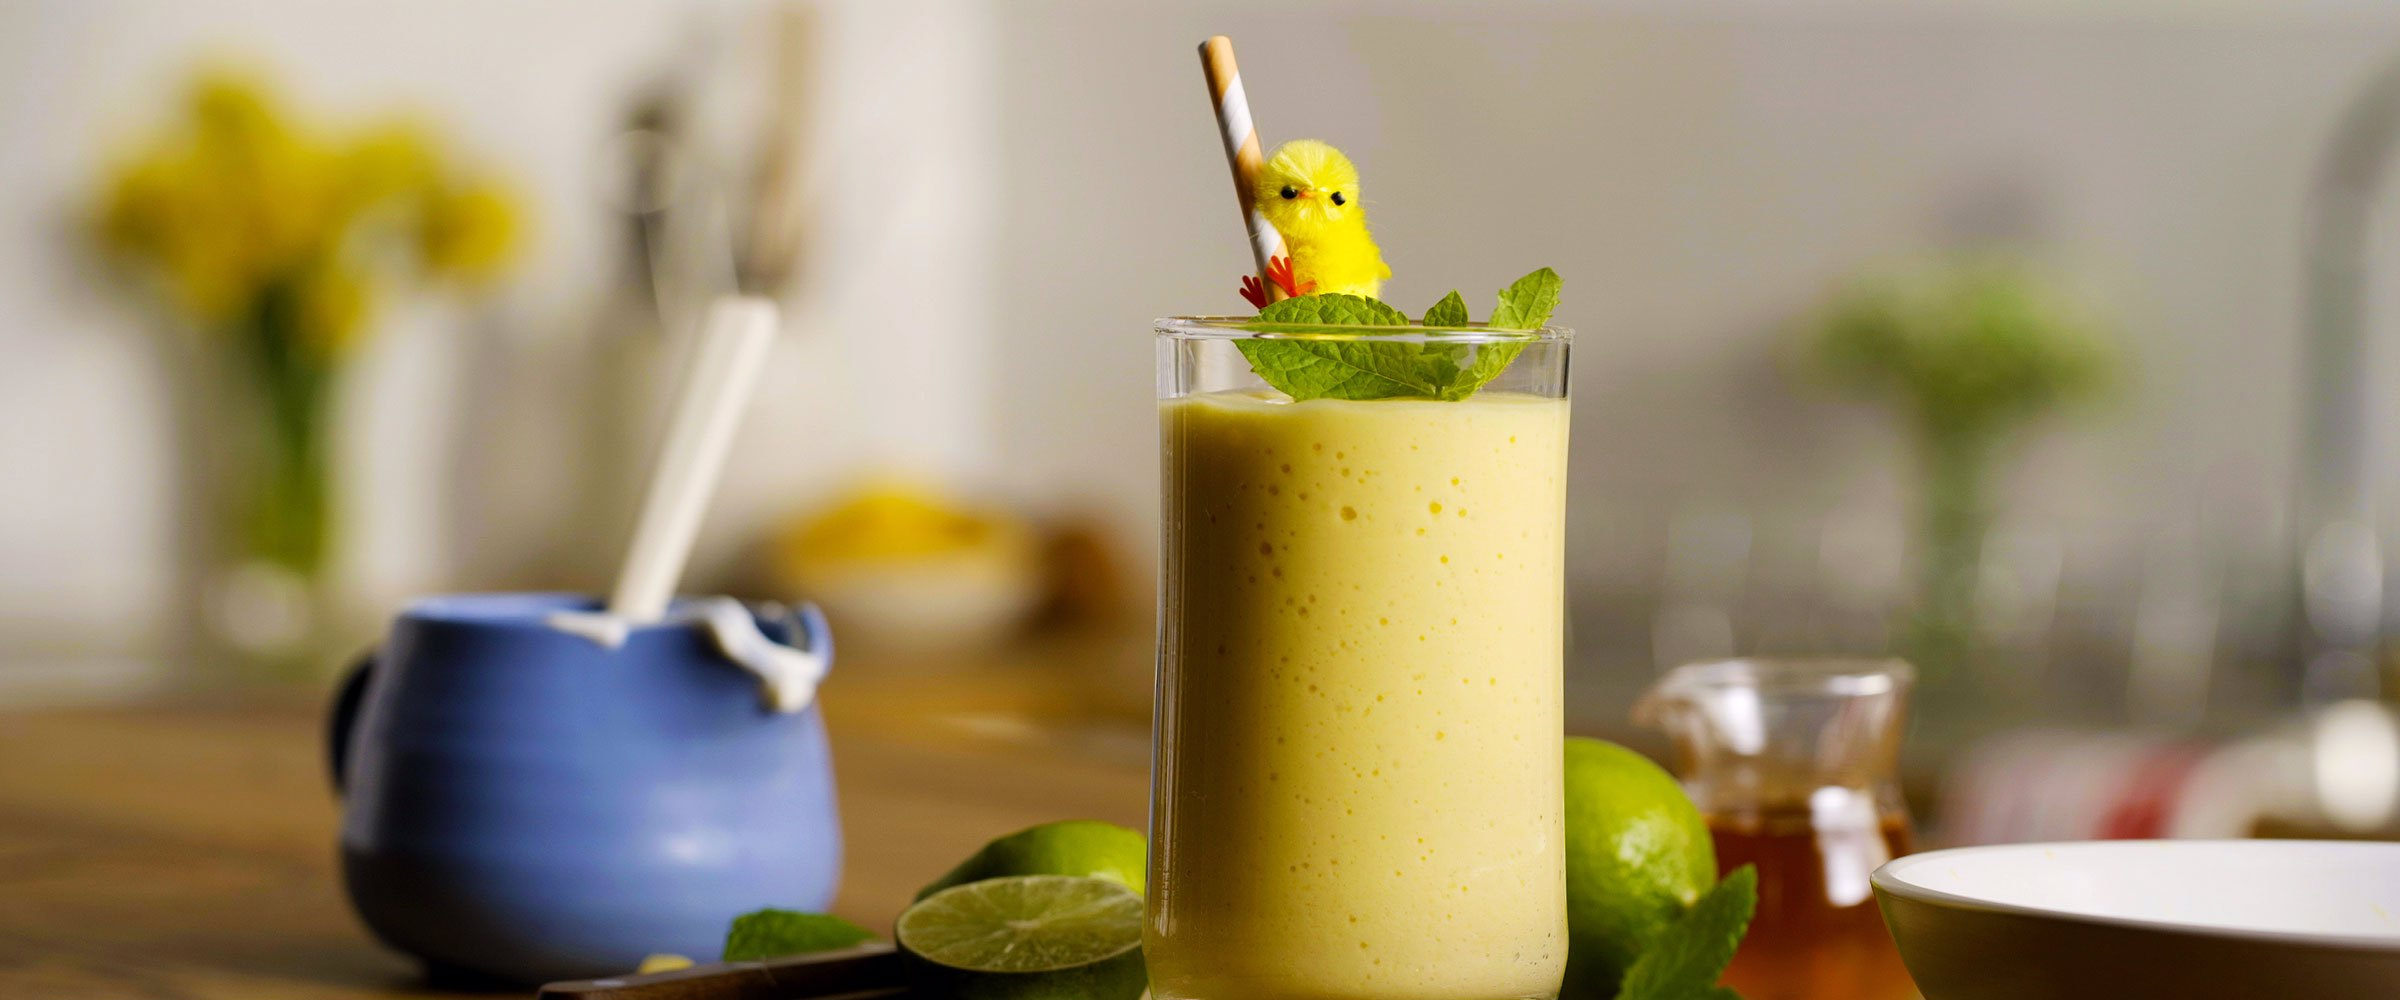 Mango smoothie hero image